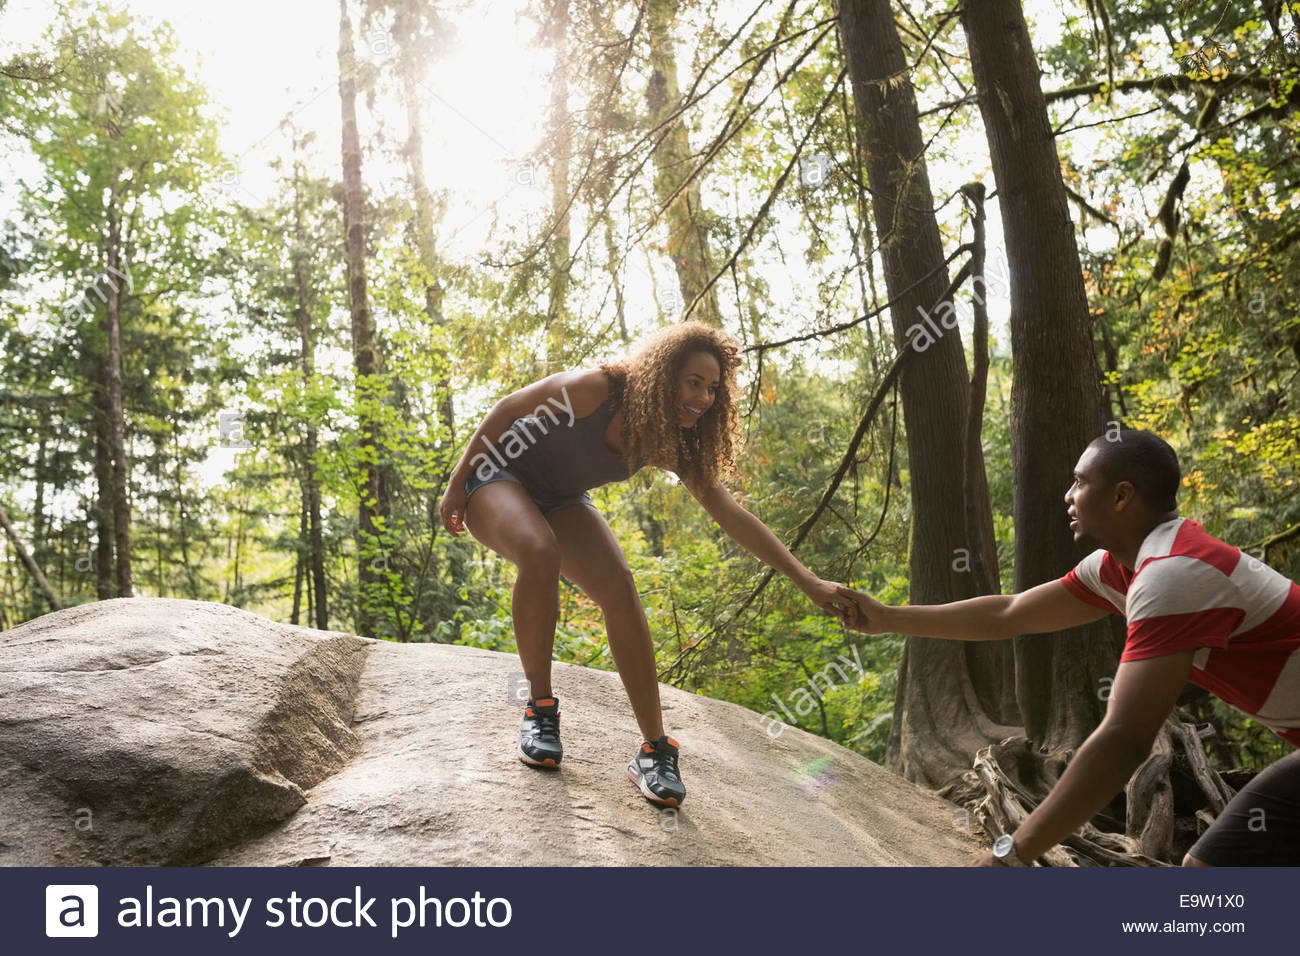 Couple holding hands on large rock in woods - Stock Image